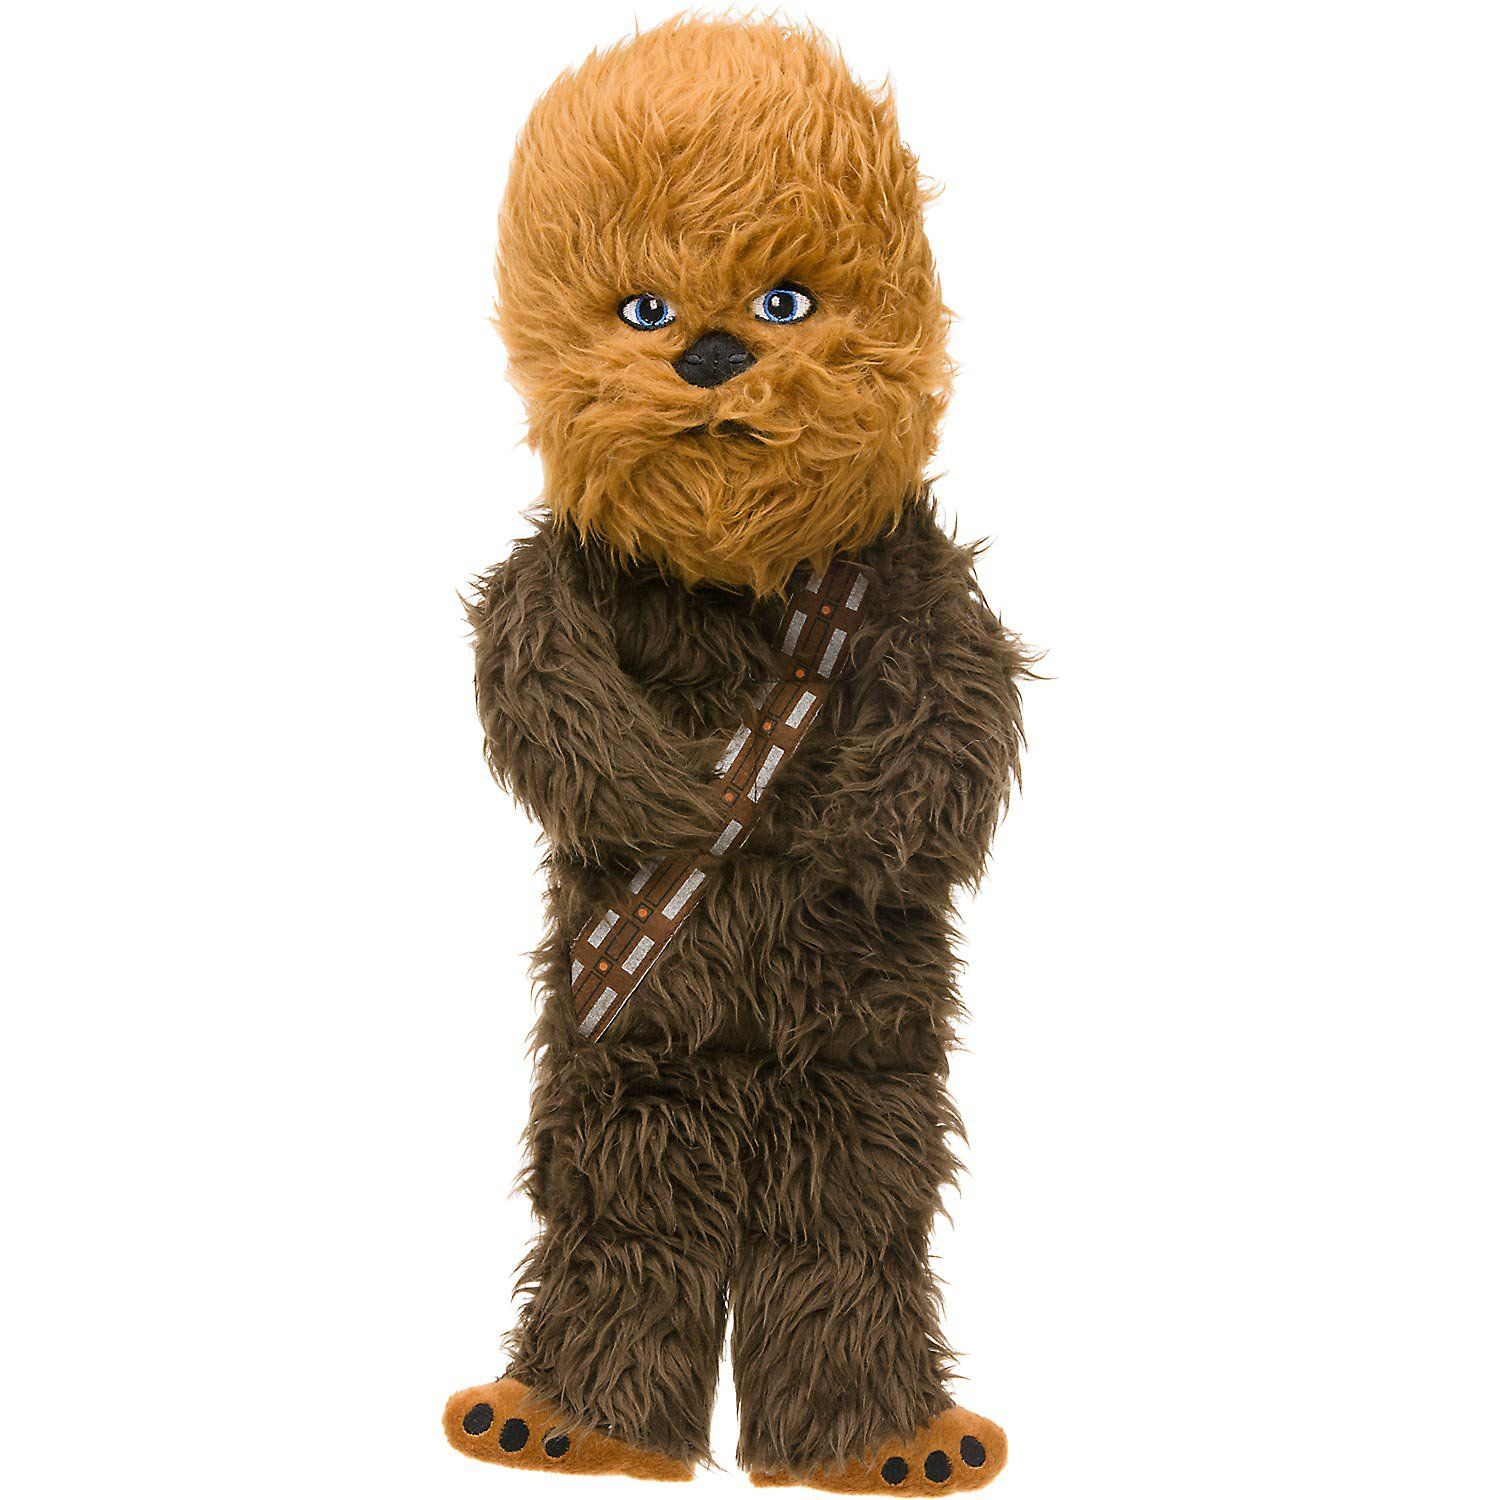 STAR WARS Chewbacca Multi Squeaker Dog Toy Dog toy with eight